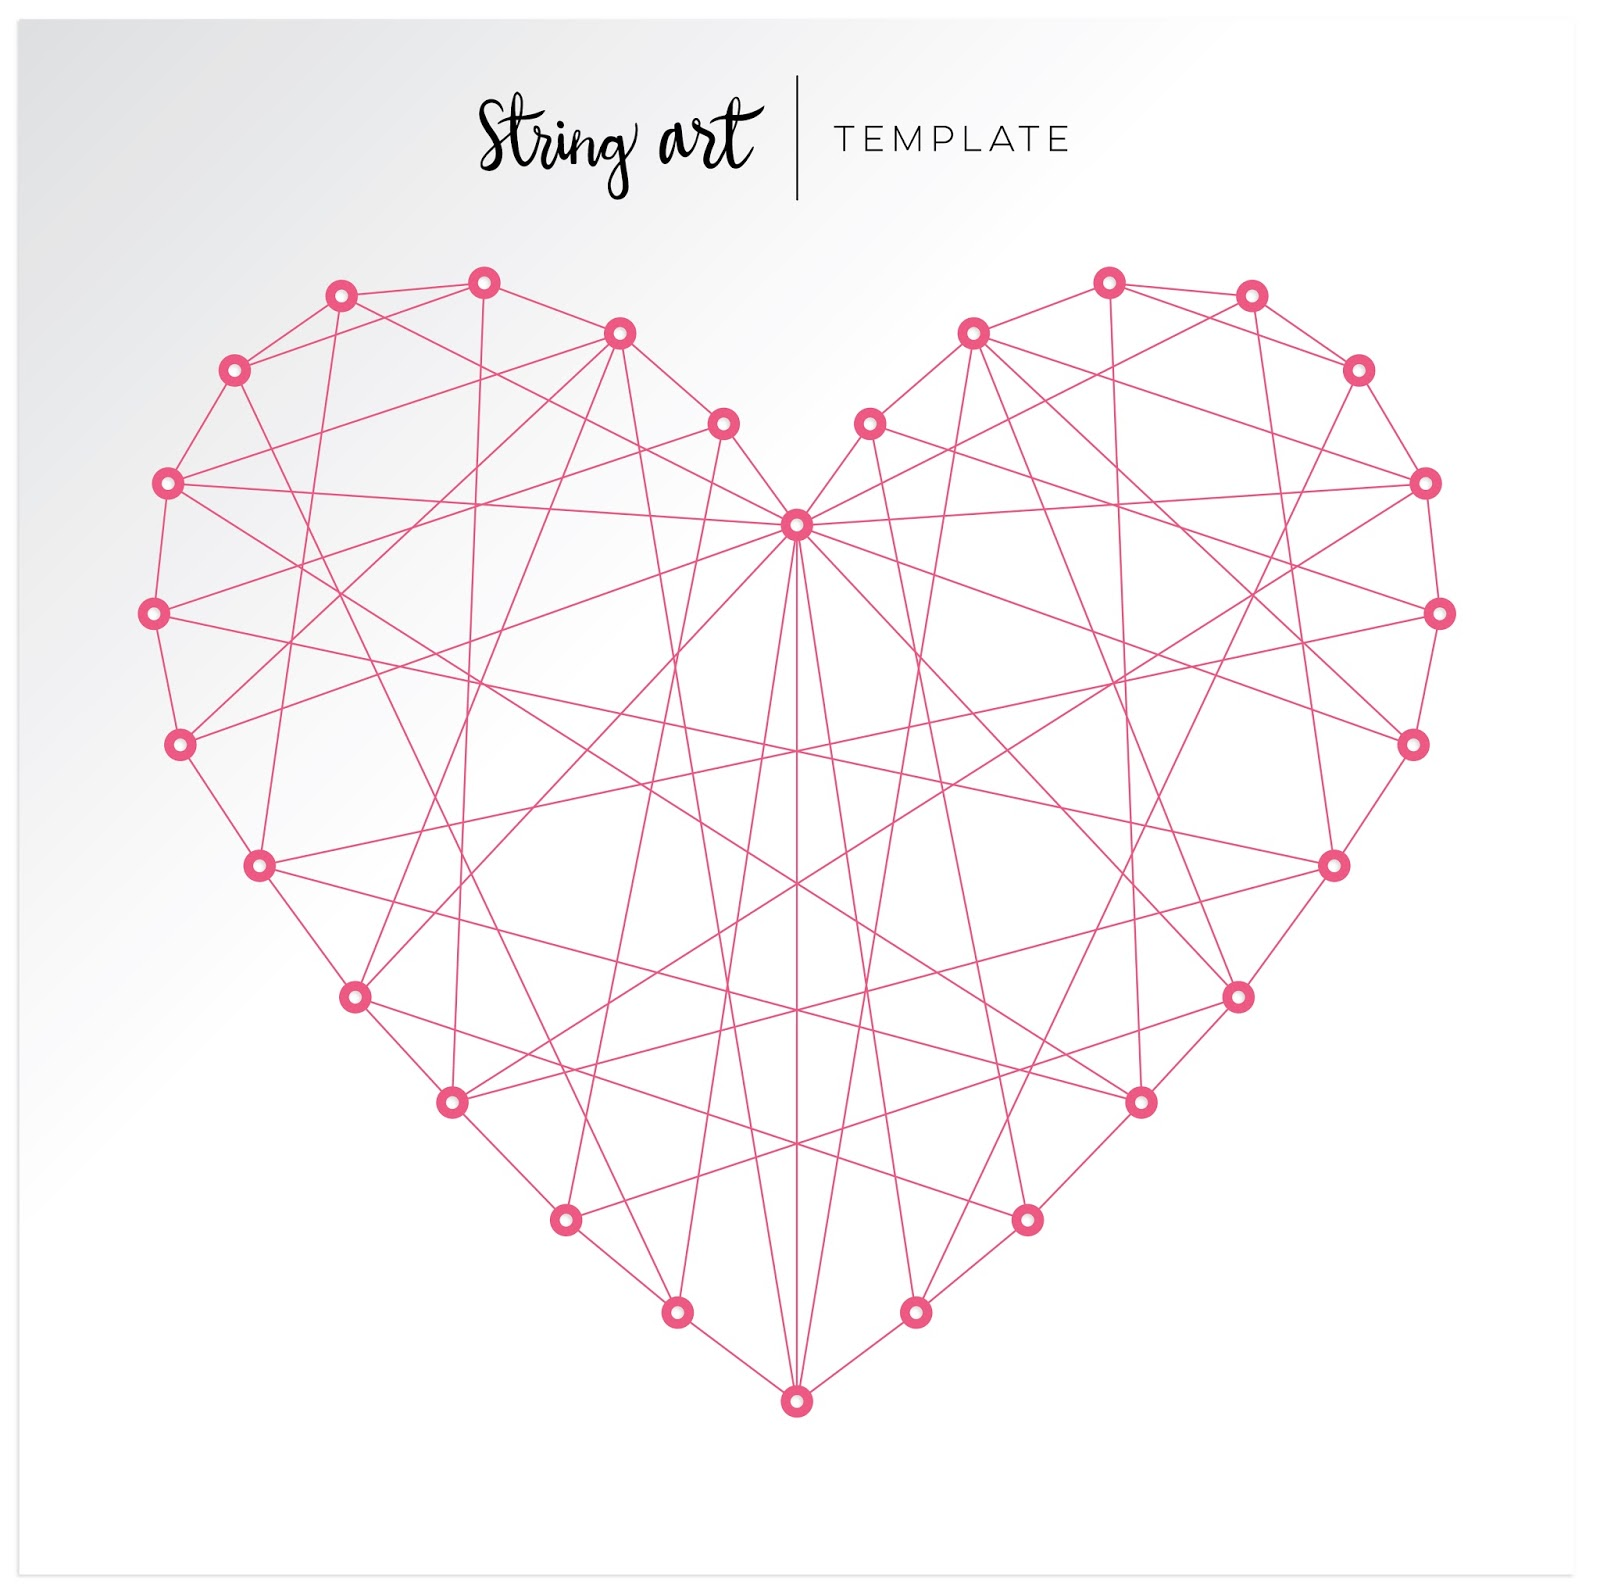 Colorful happy layout paige taylor evans - String art modele ...